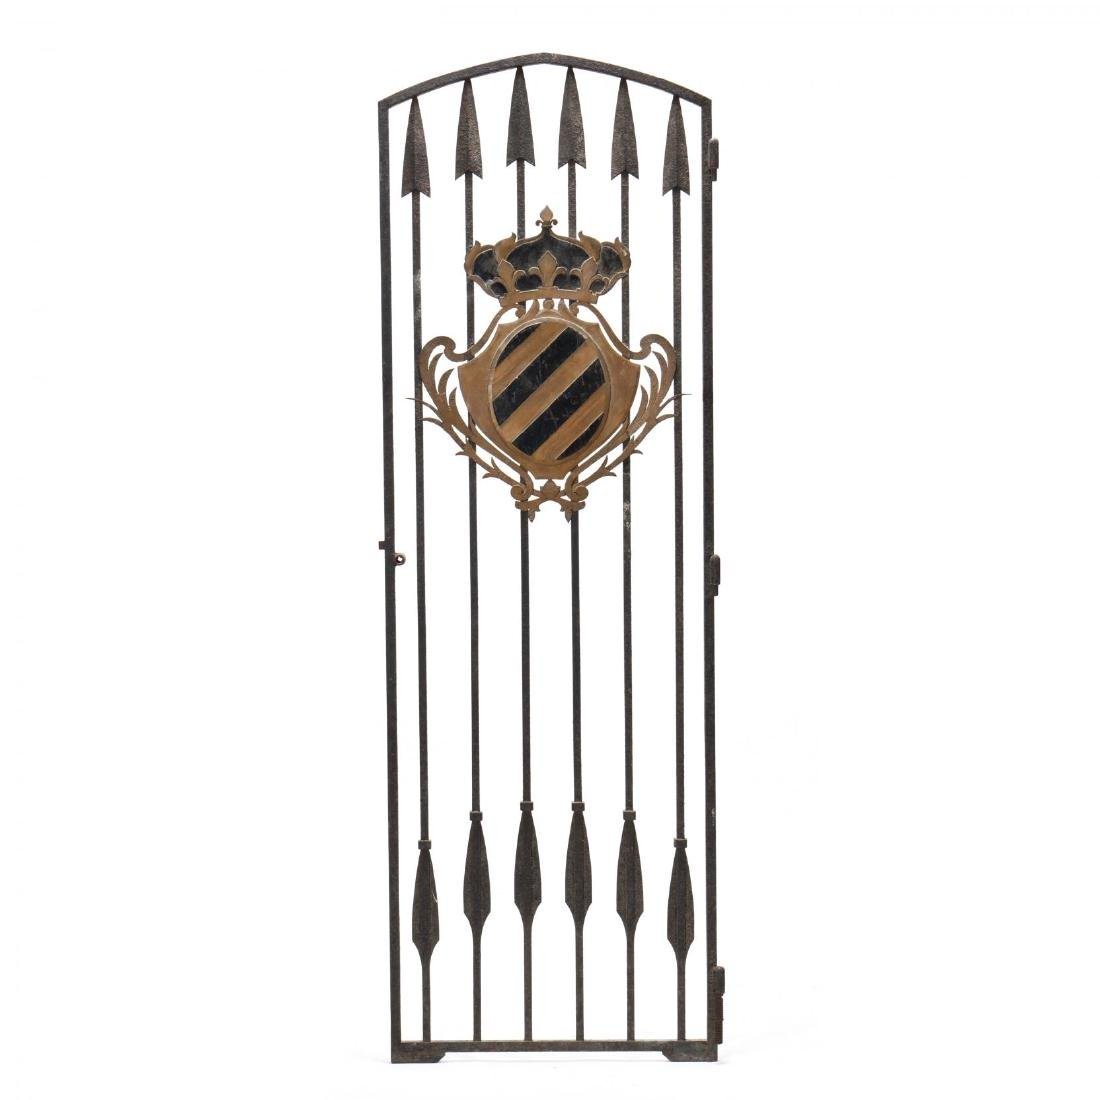 Continental Antique Iron Gate with Coat of Arms